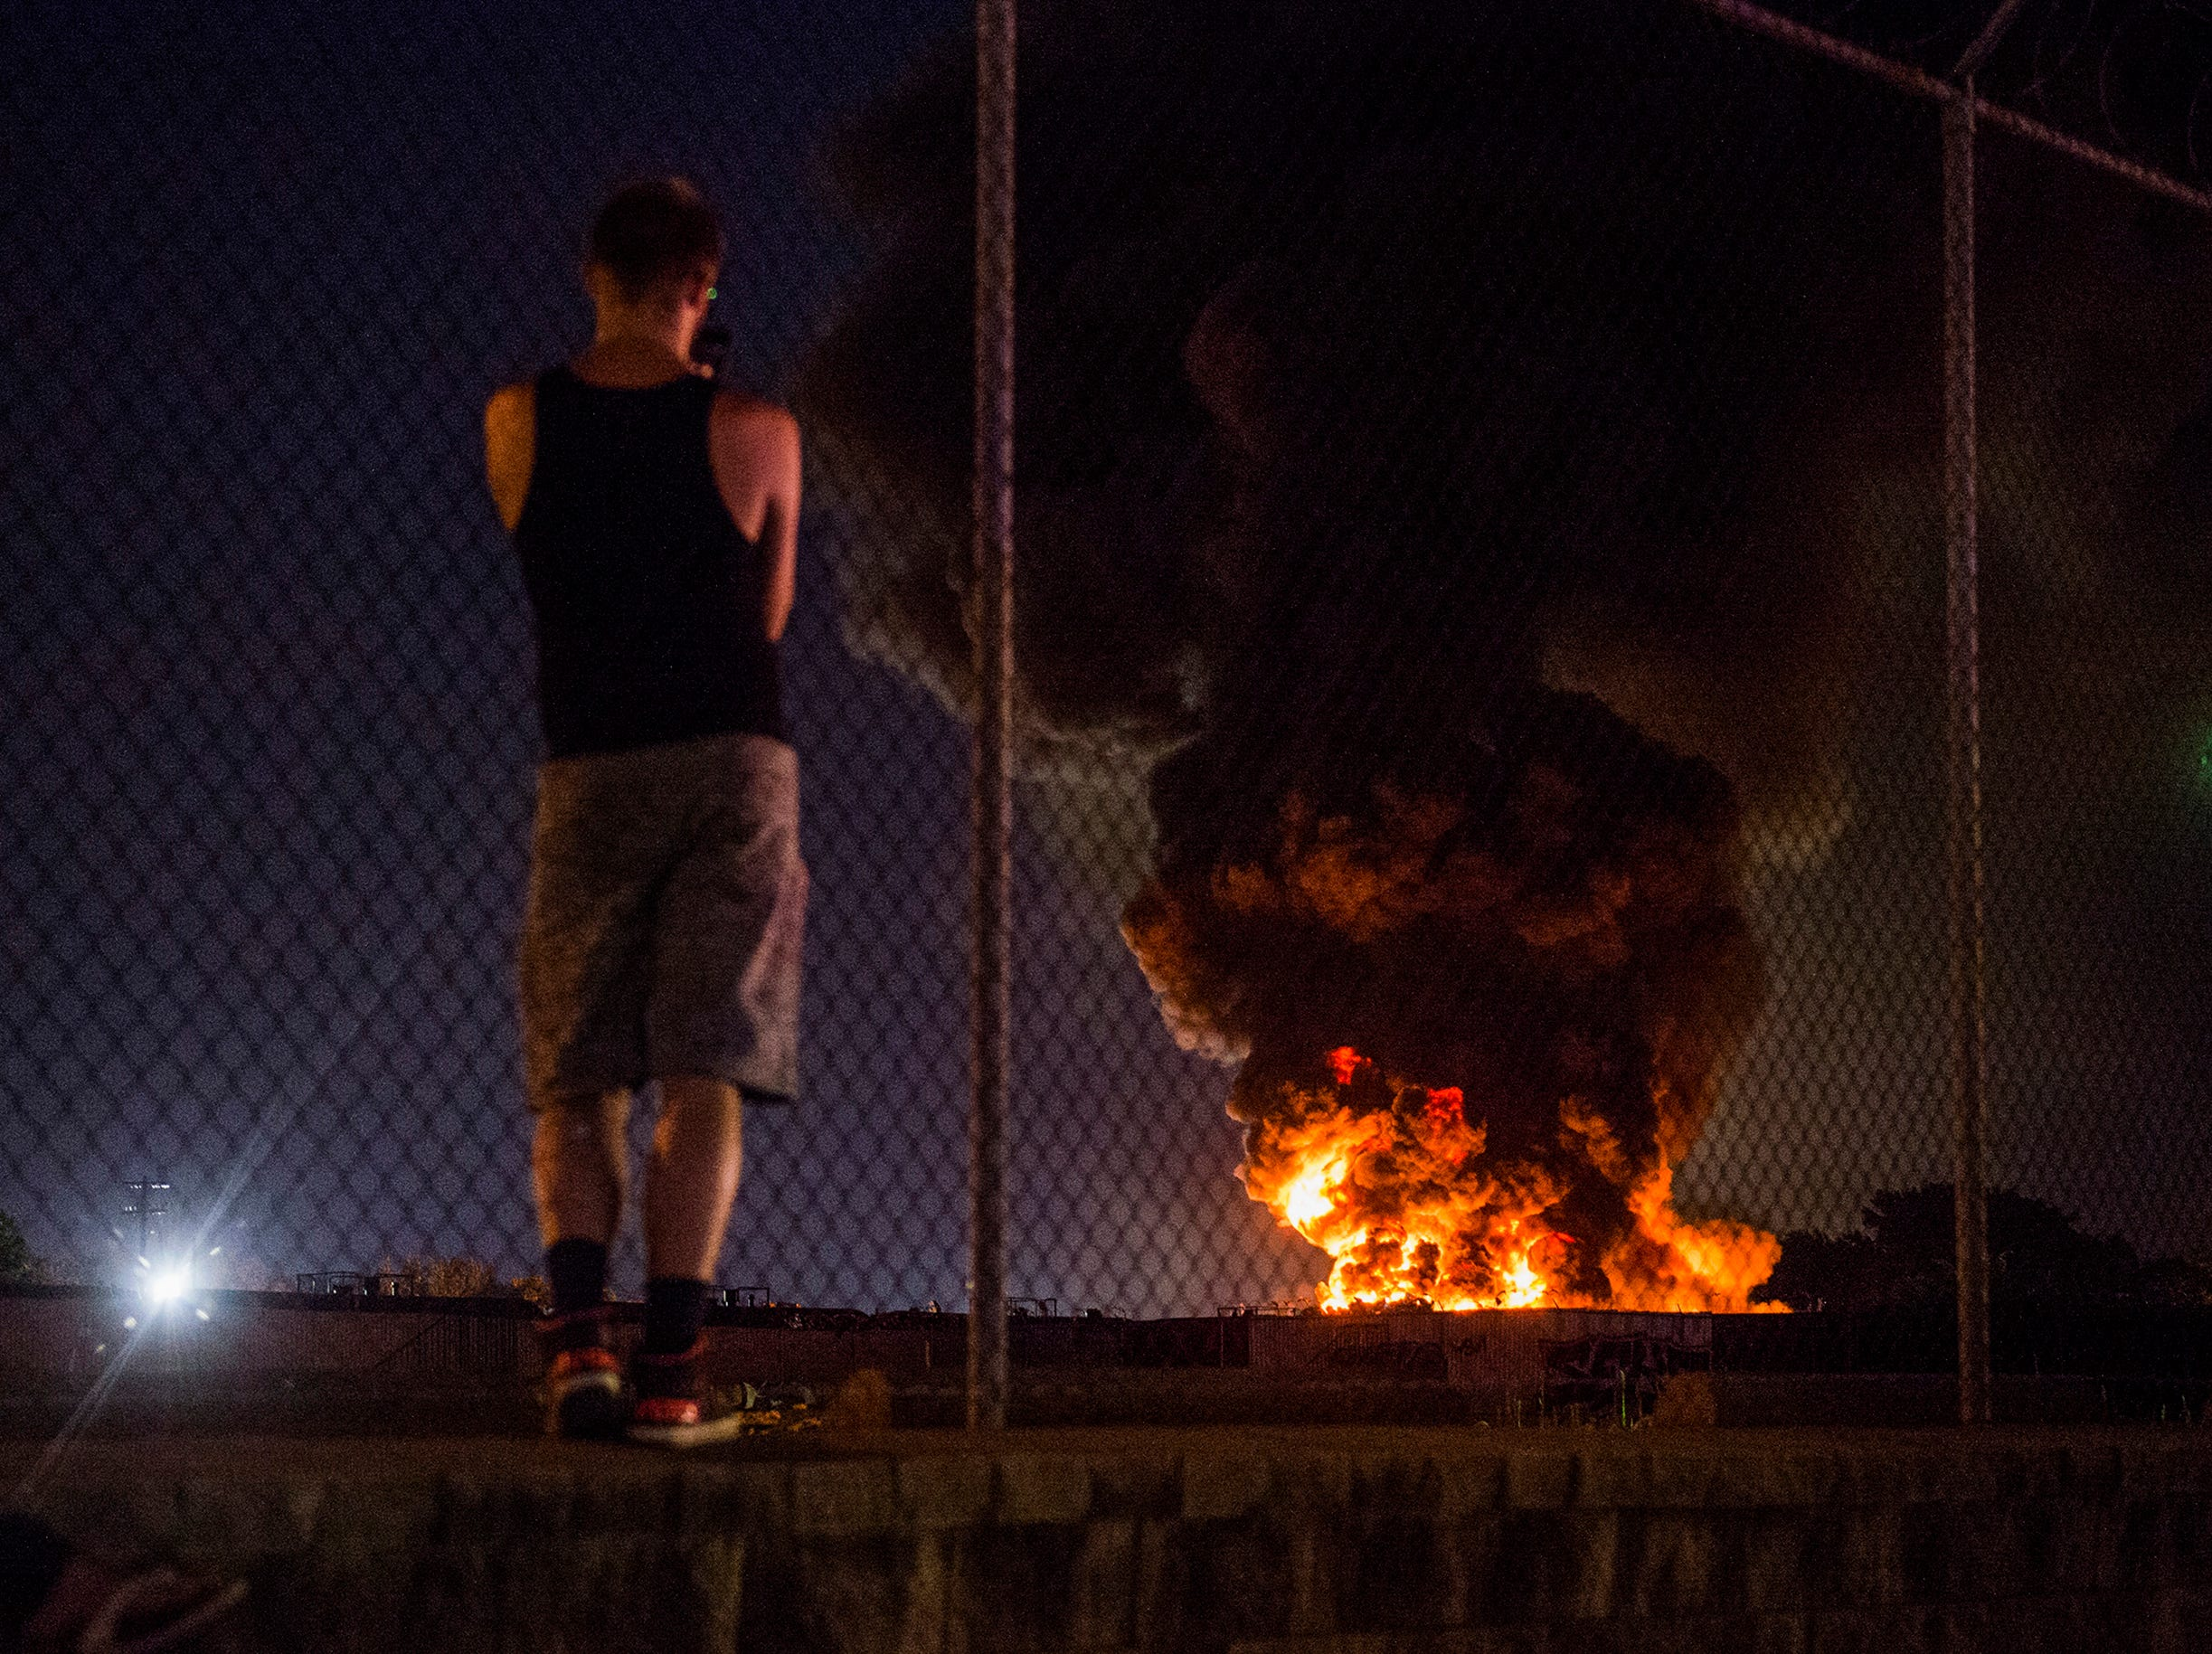 An onlooker watches as a four-alarm junkyard fire burns in the Kensington neighborhood of Philadelphia, Pa. Tuesday, July 10, 2018.